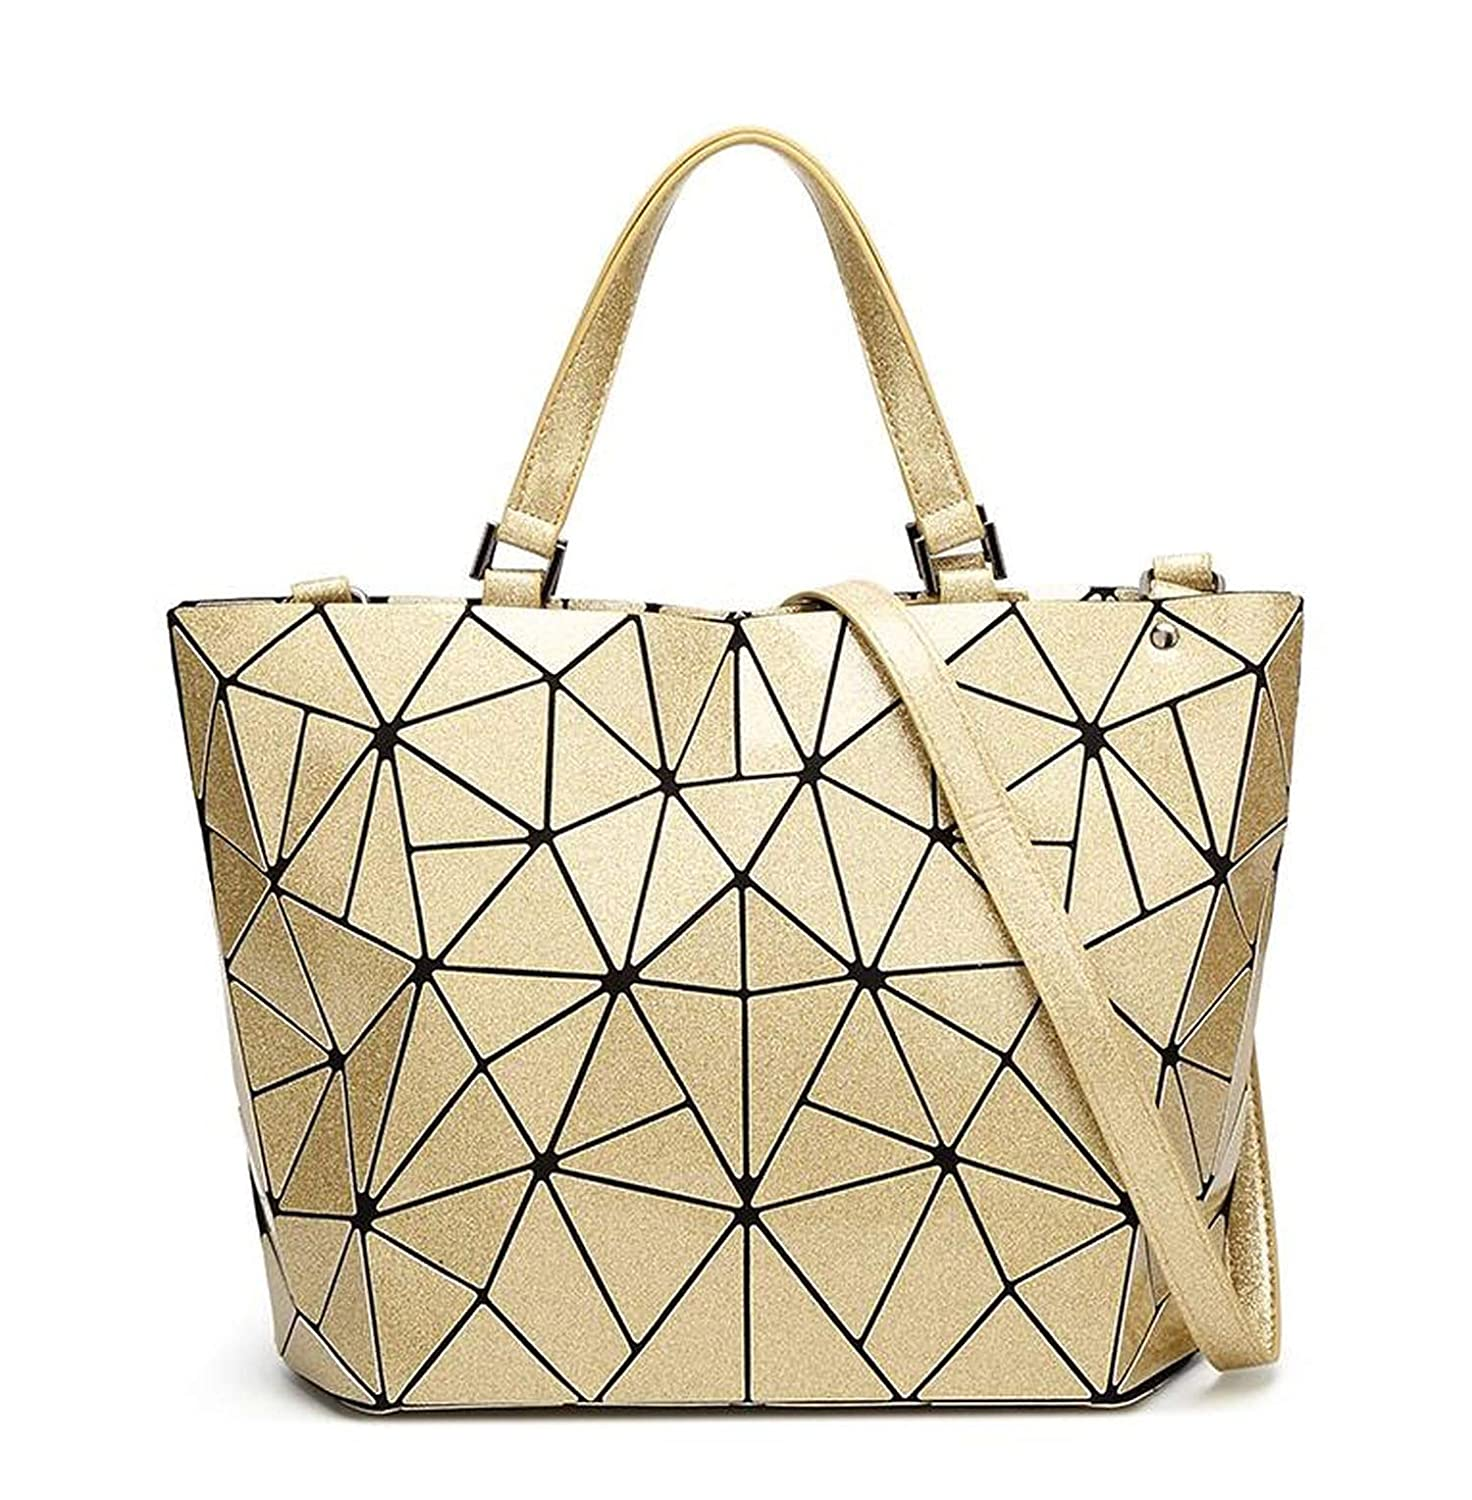 55a49fccc1bd Amazon.com: Maelove Luminous bag Women Geometry Diamond Tote Quilted ...